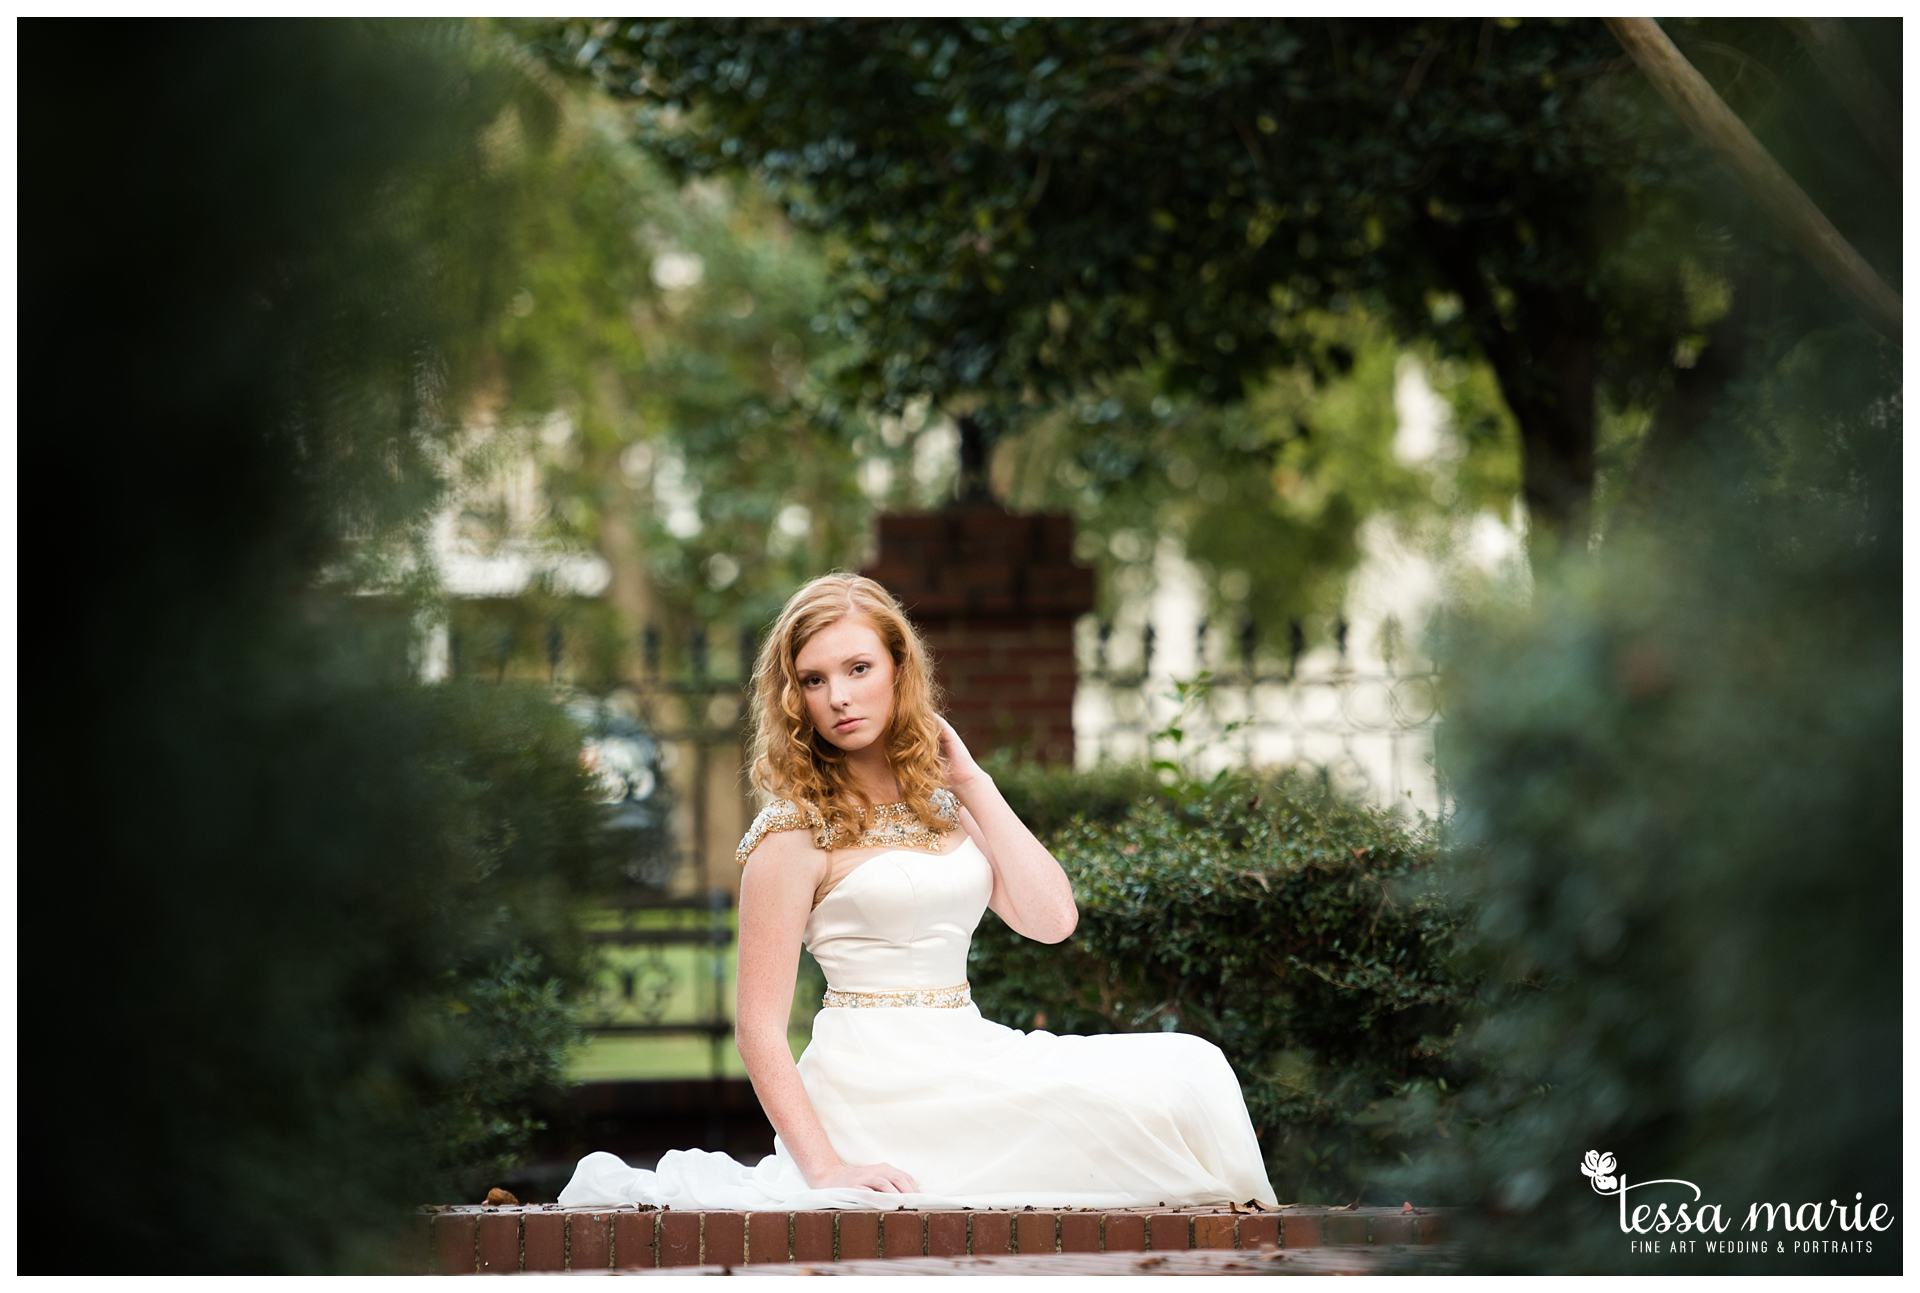 tessa_marie_weddings_legacy_story_focused_wedding_pictures_atlanta_wedding_photographer_family_pictures_portrait_Fine_art_memories_mothers_day_spring_moments_0347